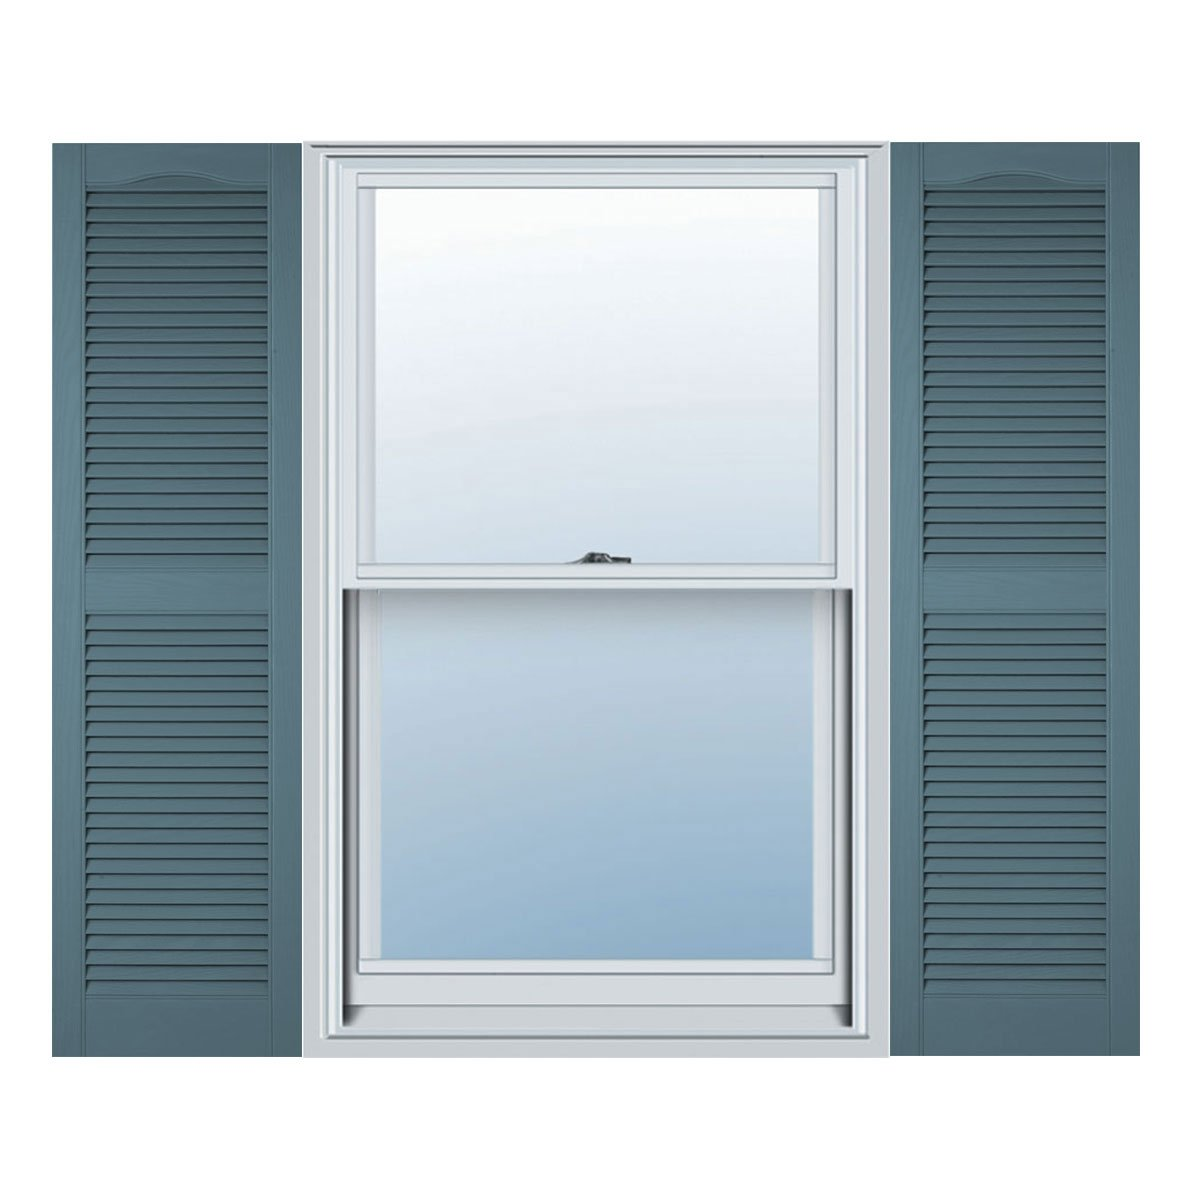 14 1/2''W x 39''H Standard Size Cathedral Open Louver Shutter, w/Installation Shutter-Lok's, 004 - Wedgewood Blue